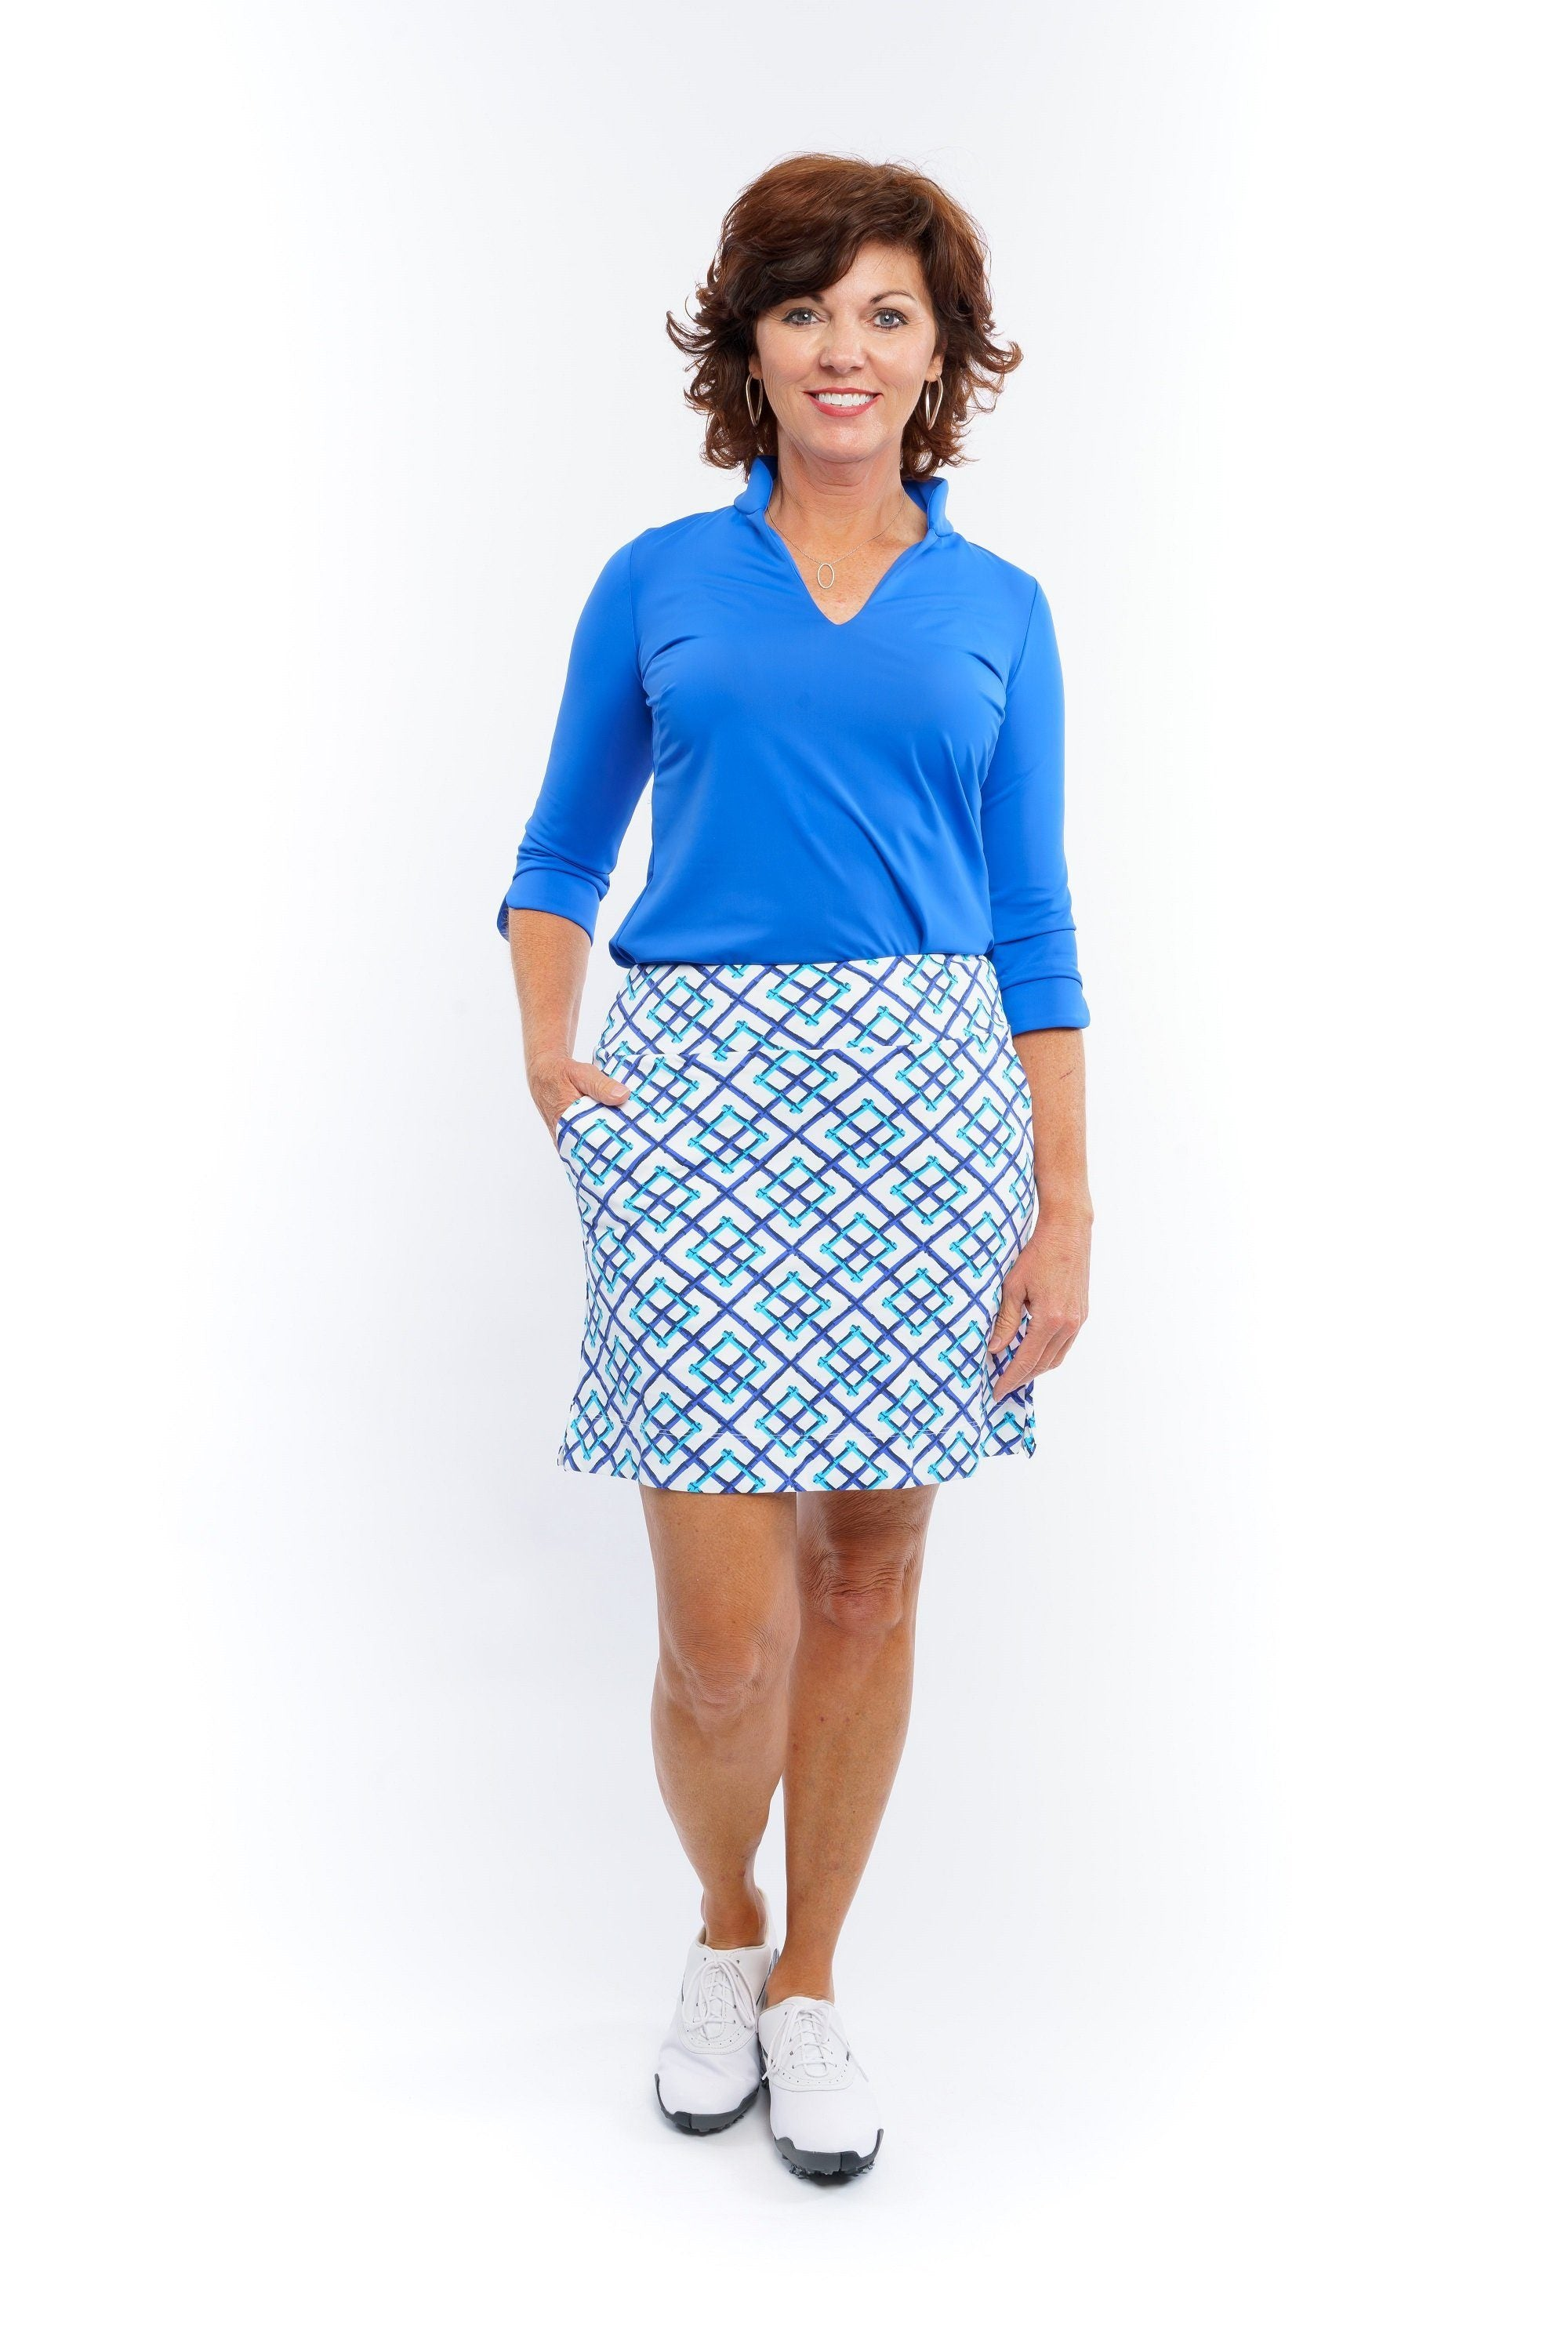 Katherine Way Kiawah Skort - Bamboo Fence Royal